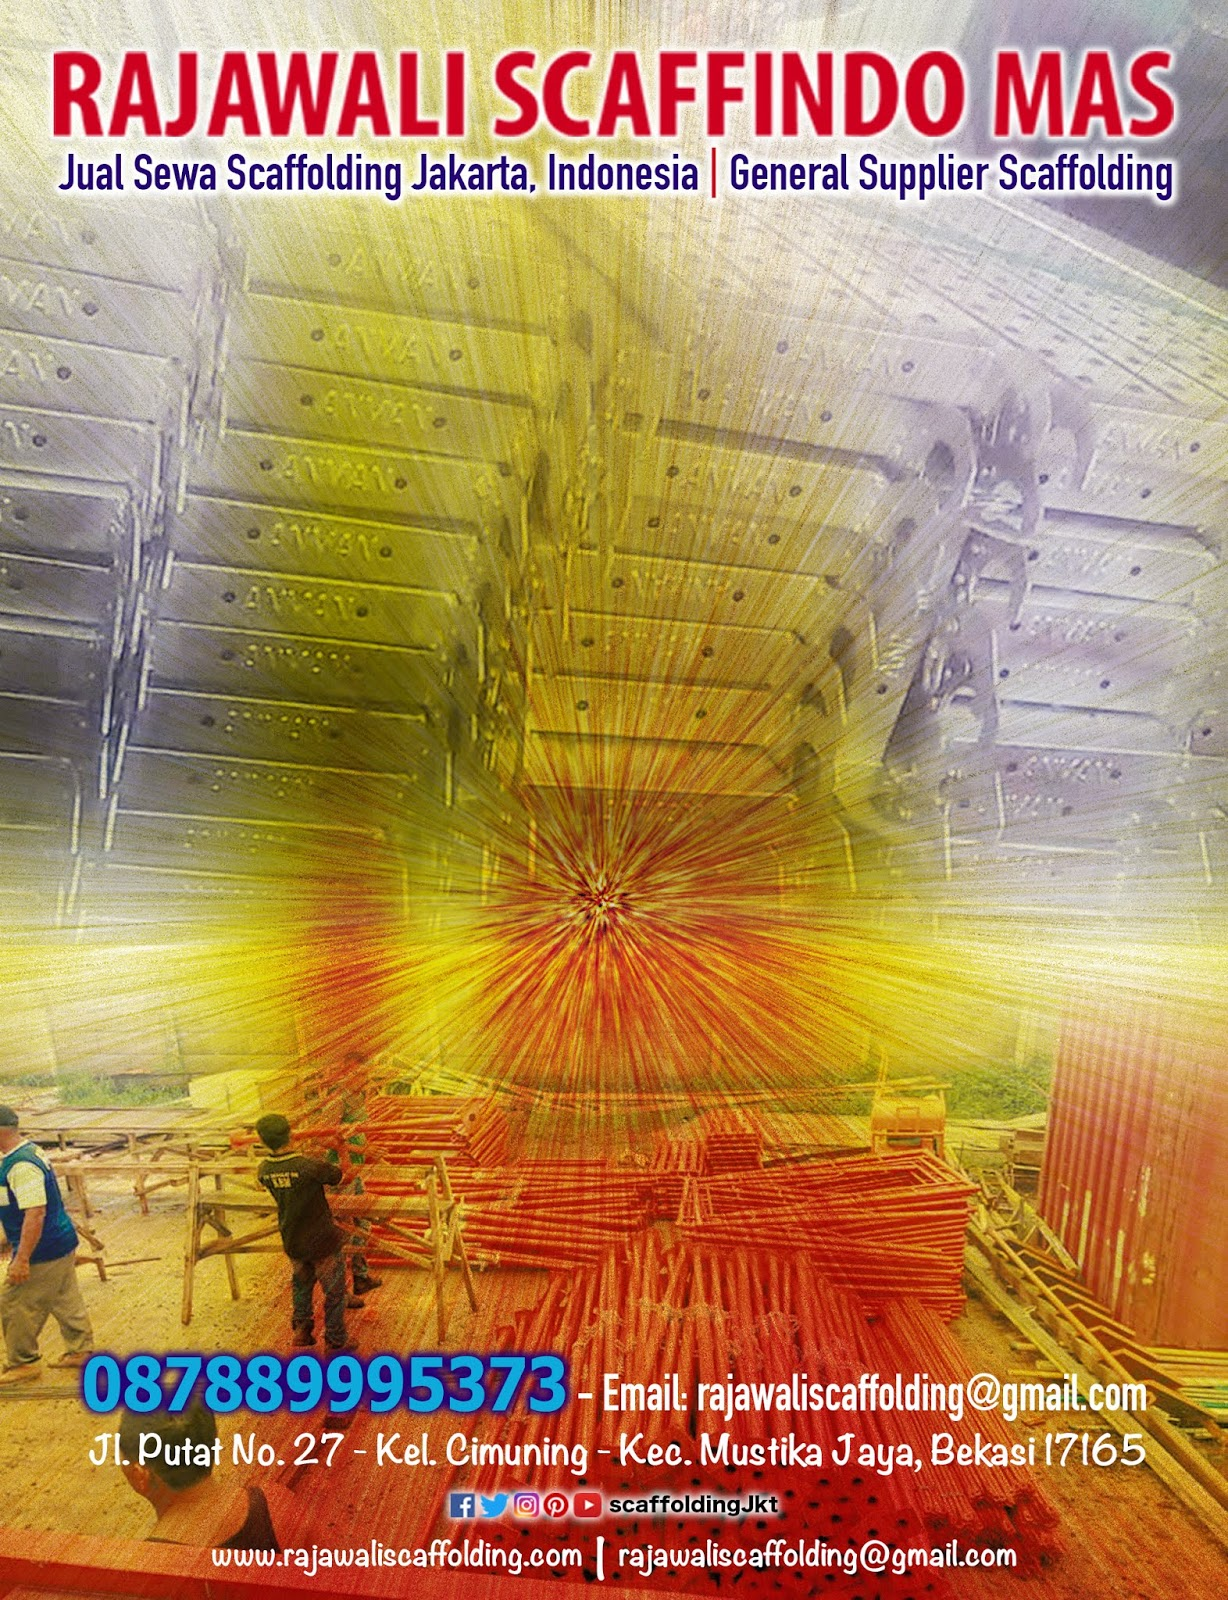 general supplier scaffolding